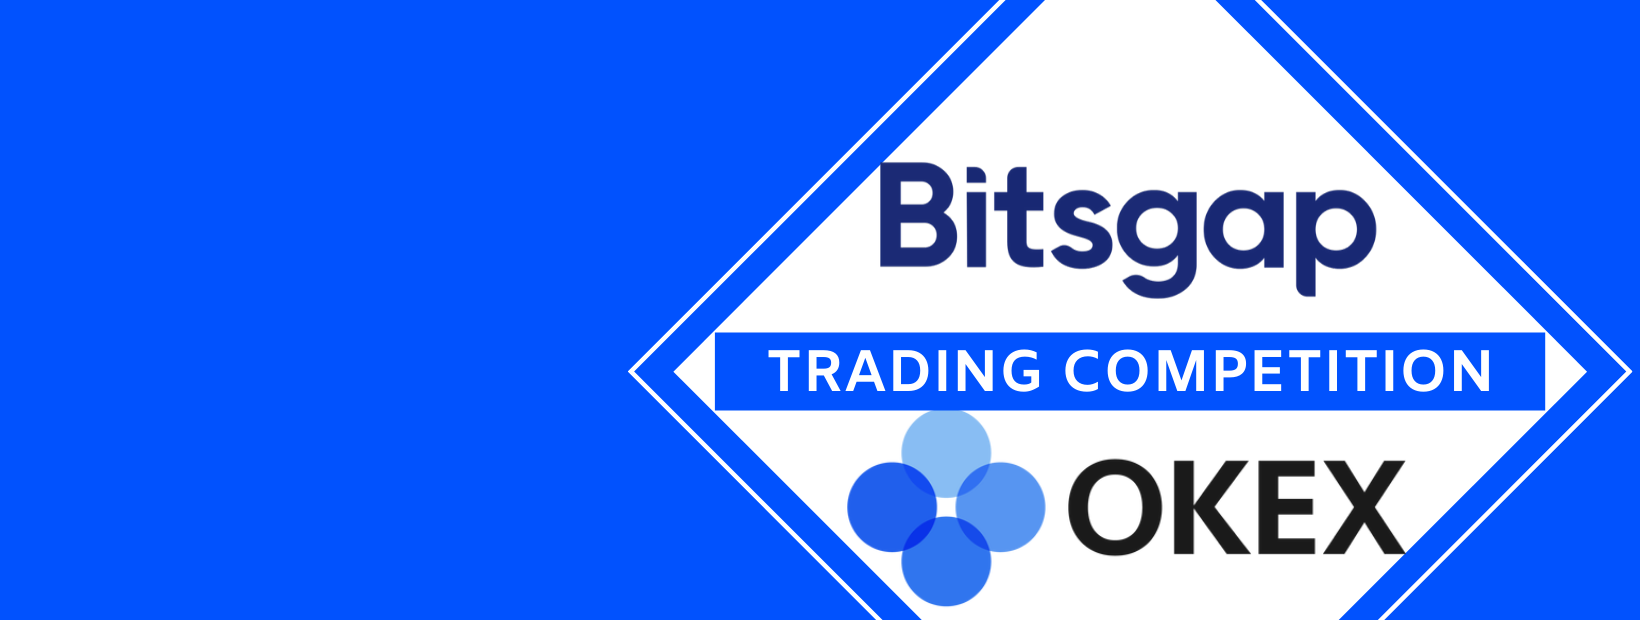 Bitsgap OKEx Trading Competition